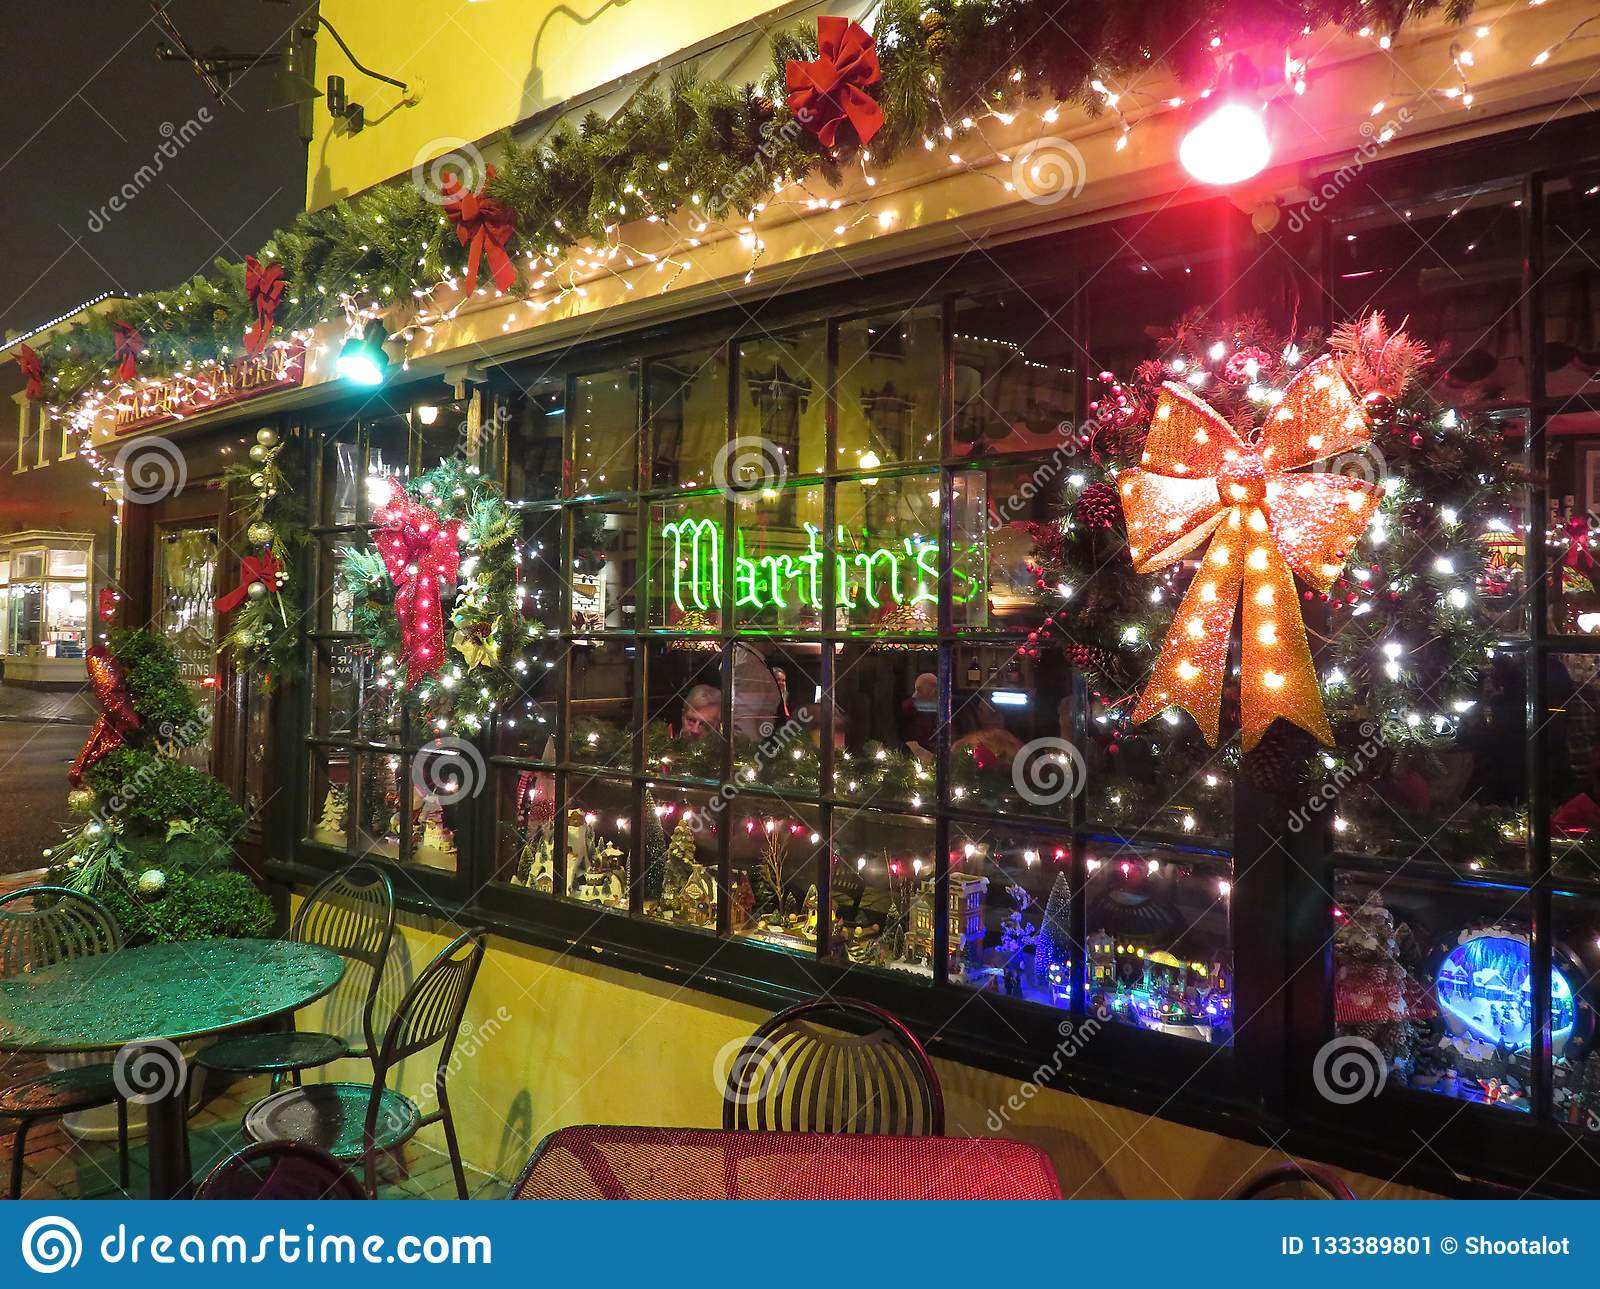 Dc Christmas Bar.Martins Tavern Restaurant In Georgetown During Christmas